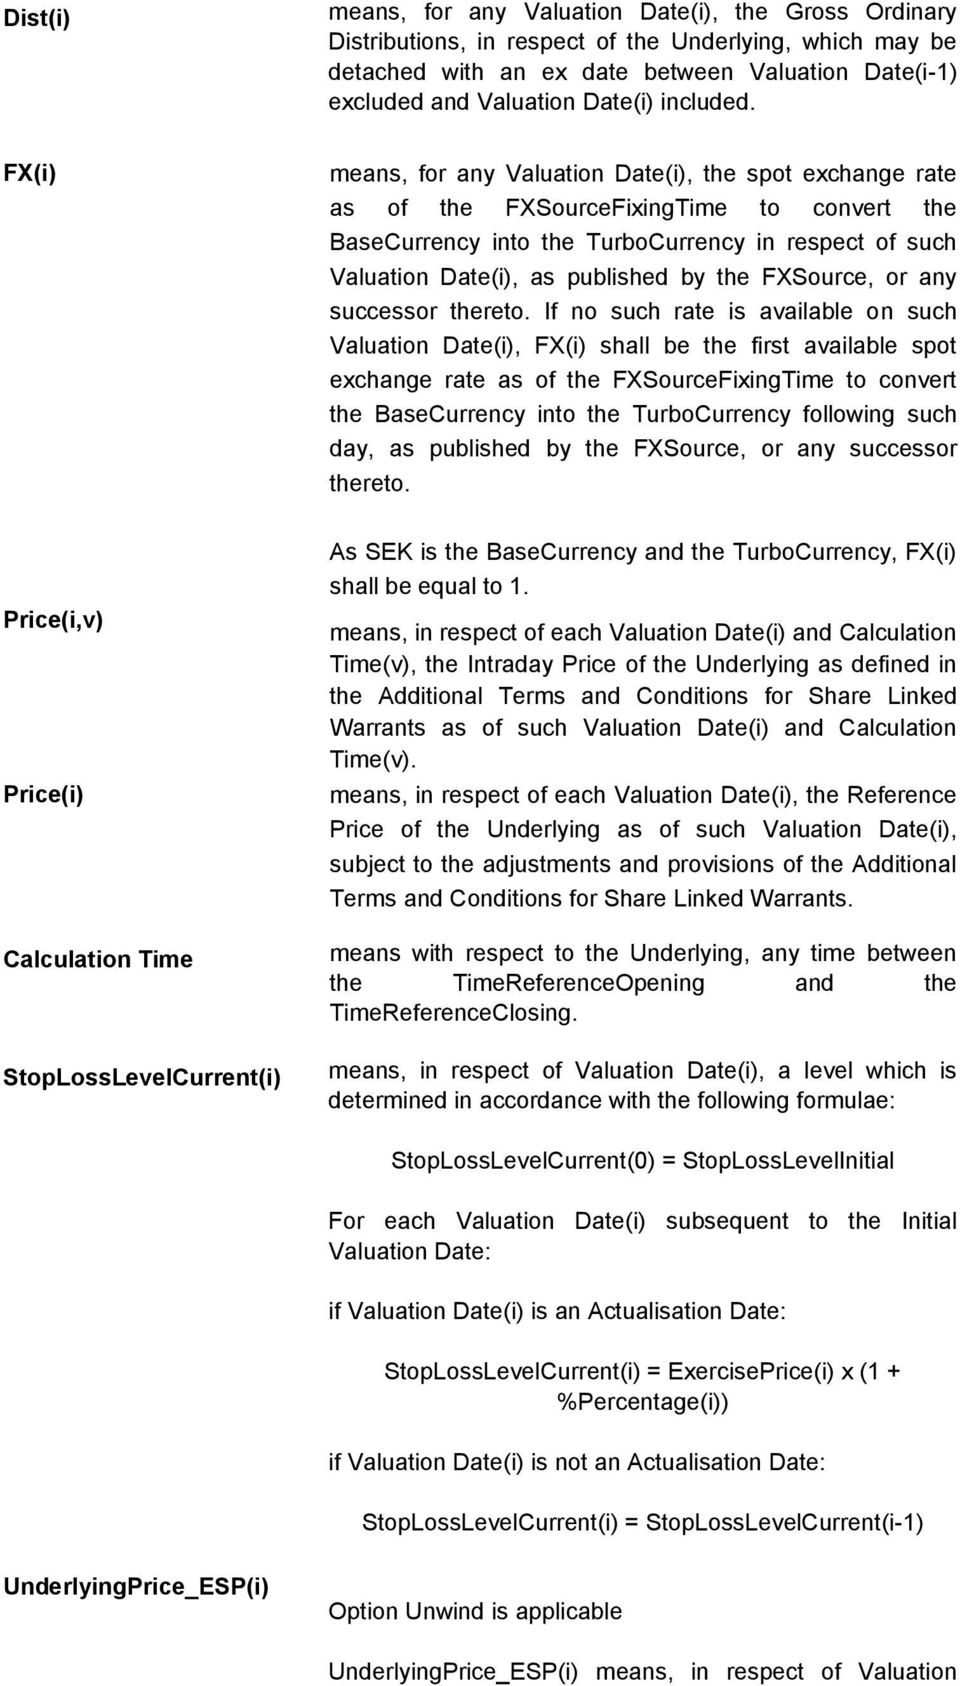 FX(i) means, for any Valuation Date(i), the spot exchange rate as of the FXSourceFixingTime to convert the BaseCurrency into the TurboCurrency in respect of such Valuation Date(i), as published by